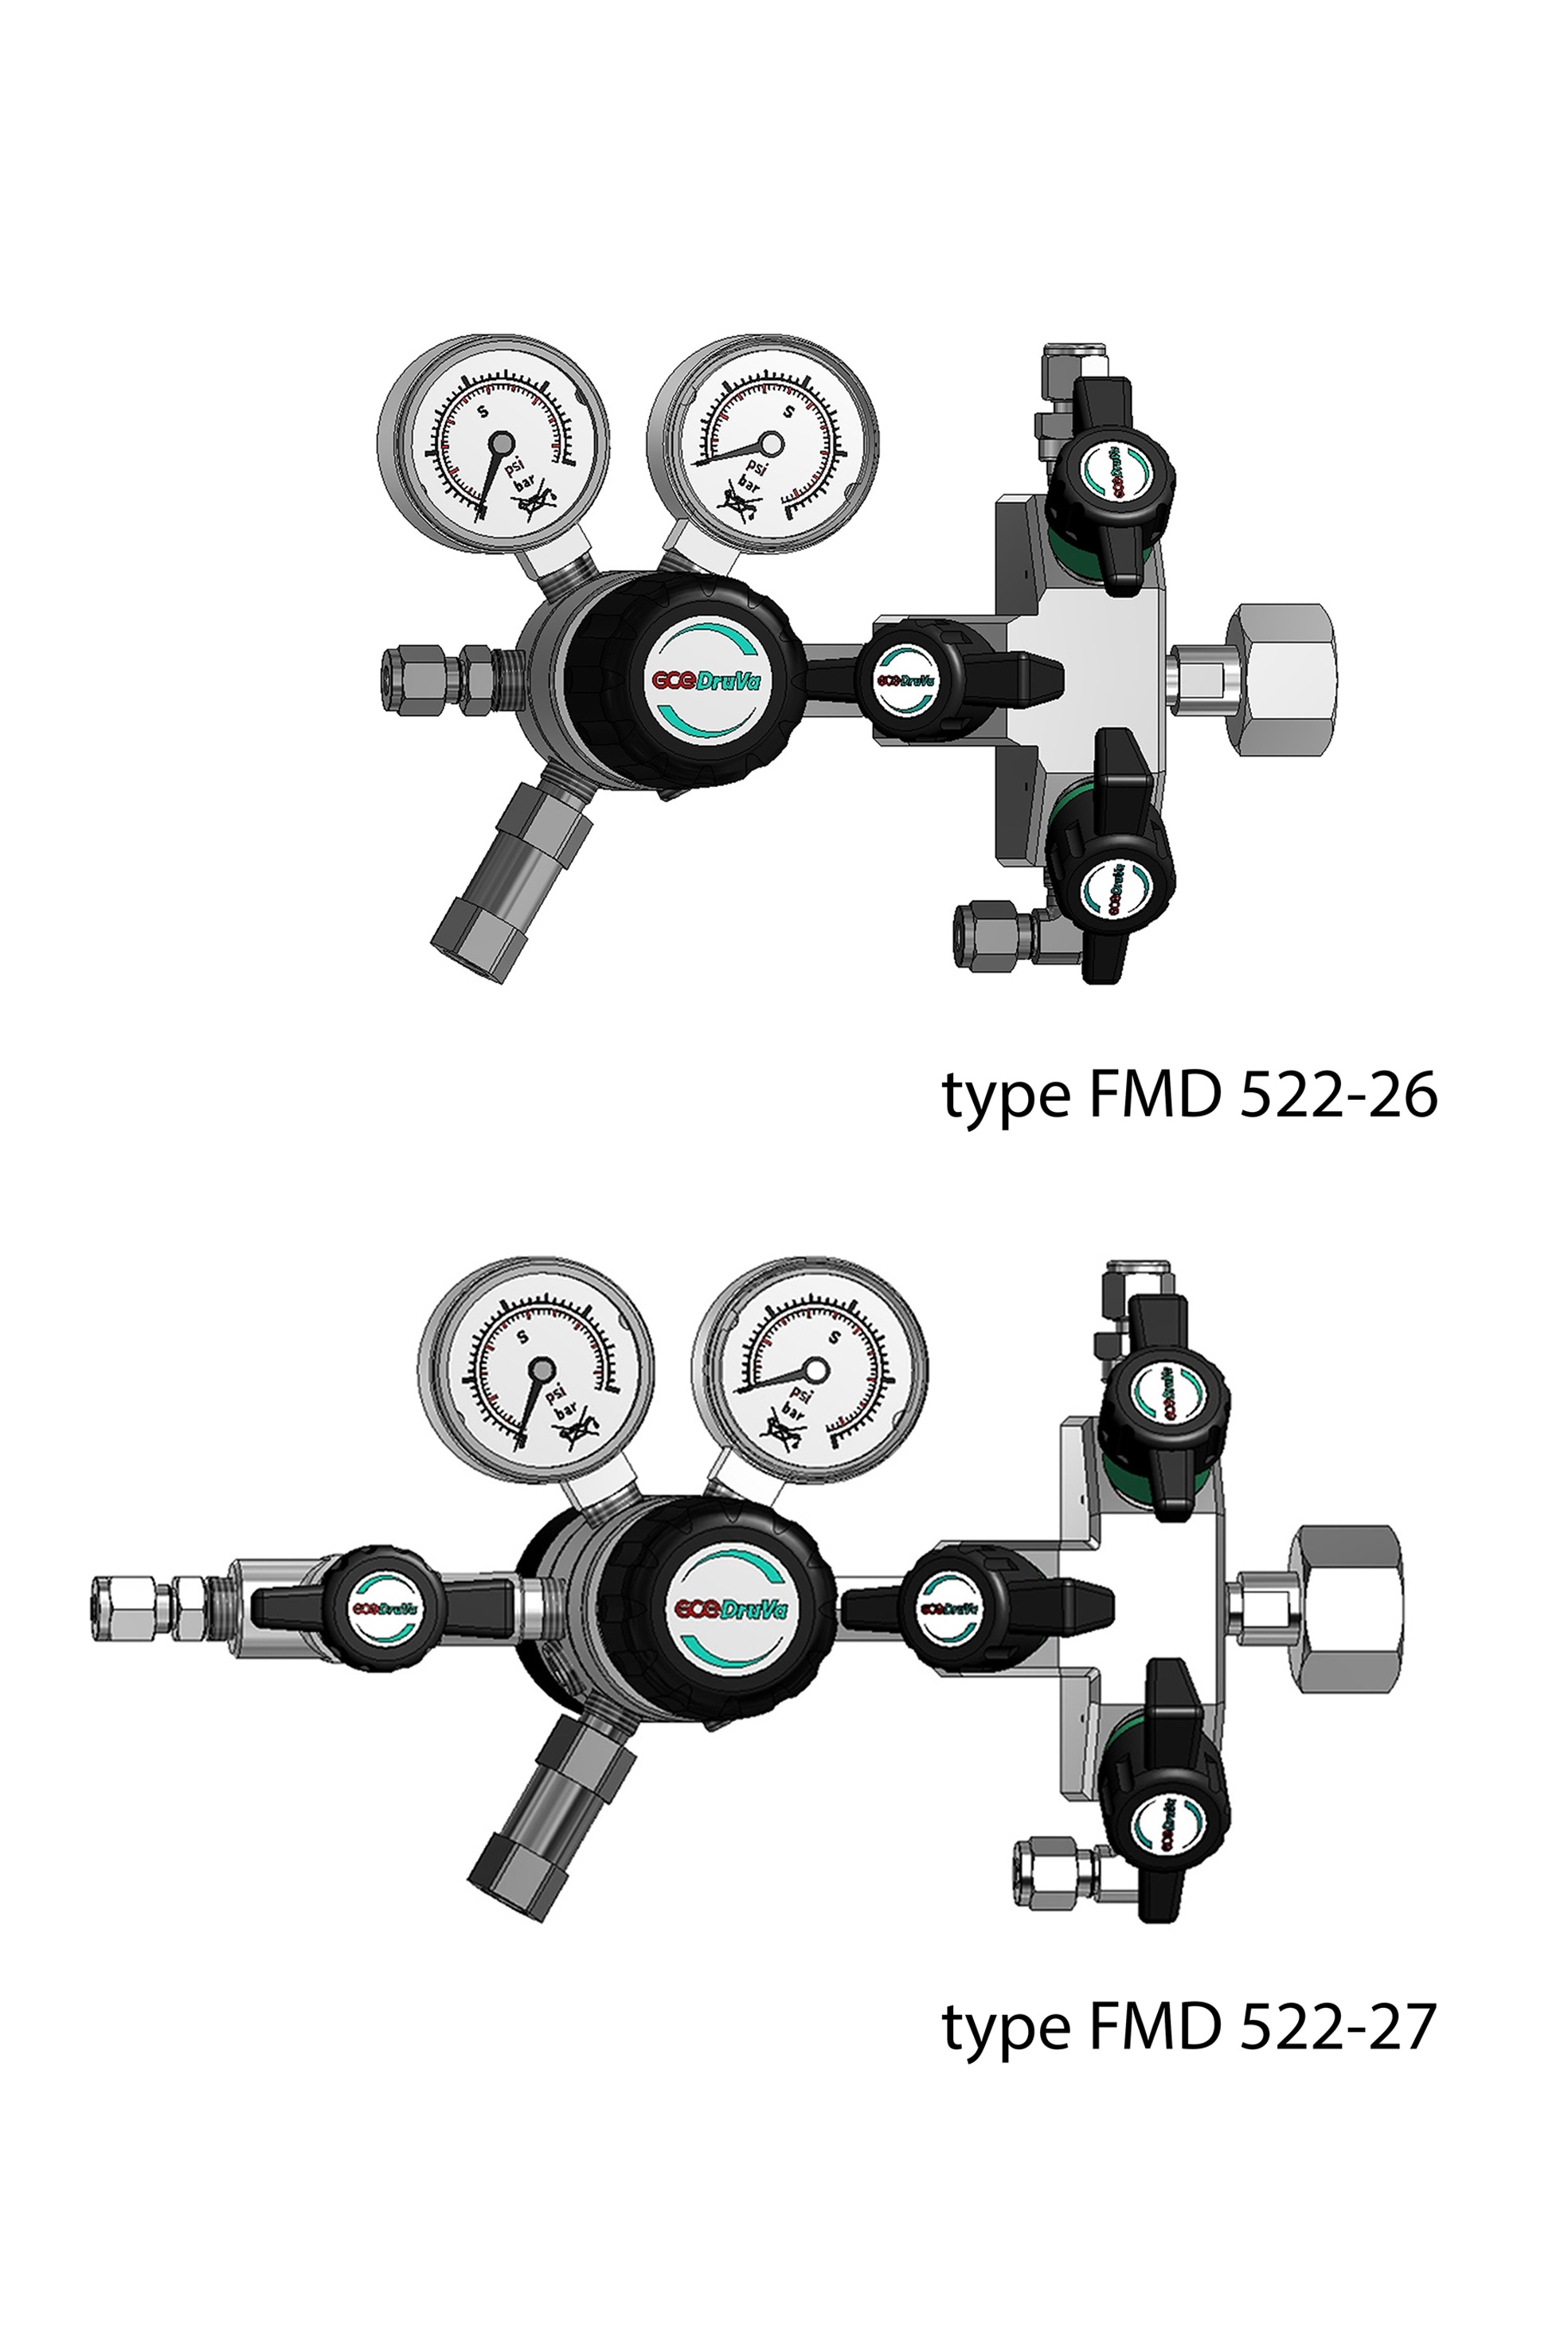 FMD 522/562 - DUAL STAGE REGULATOR 6.0 INERT PURGING ABSOLUTE PRESSURE page image